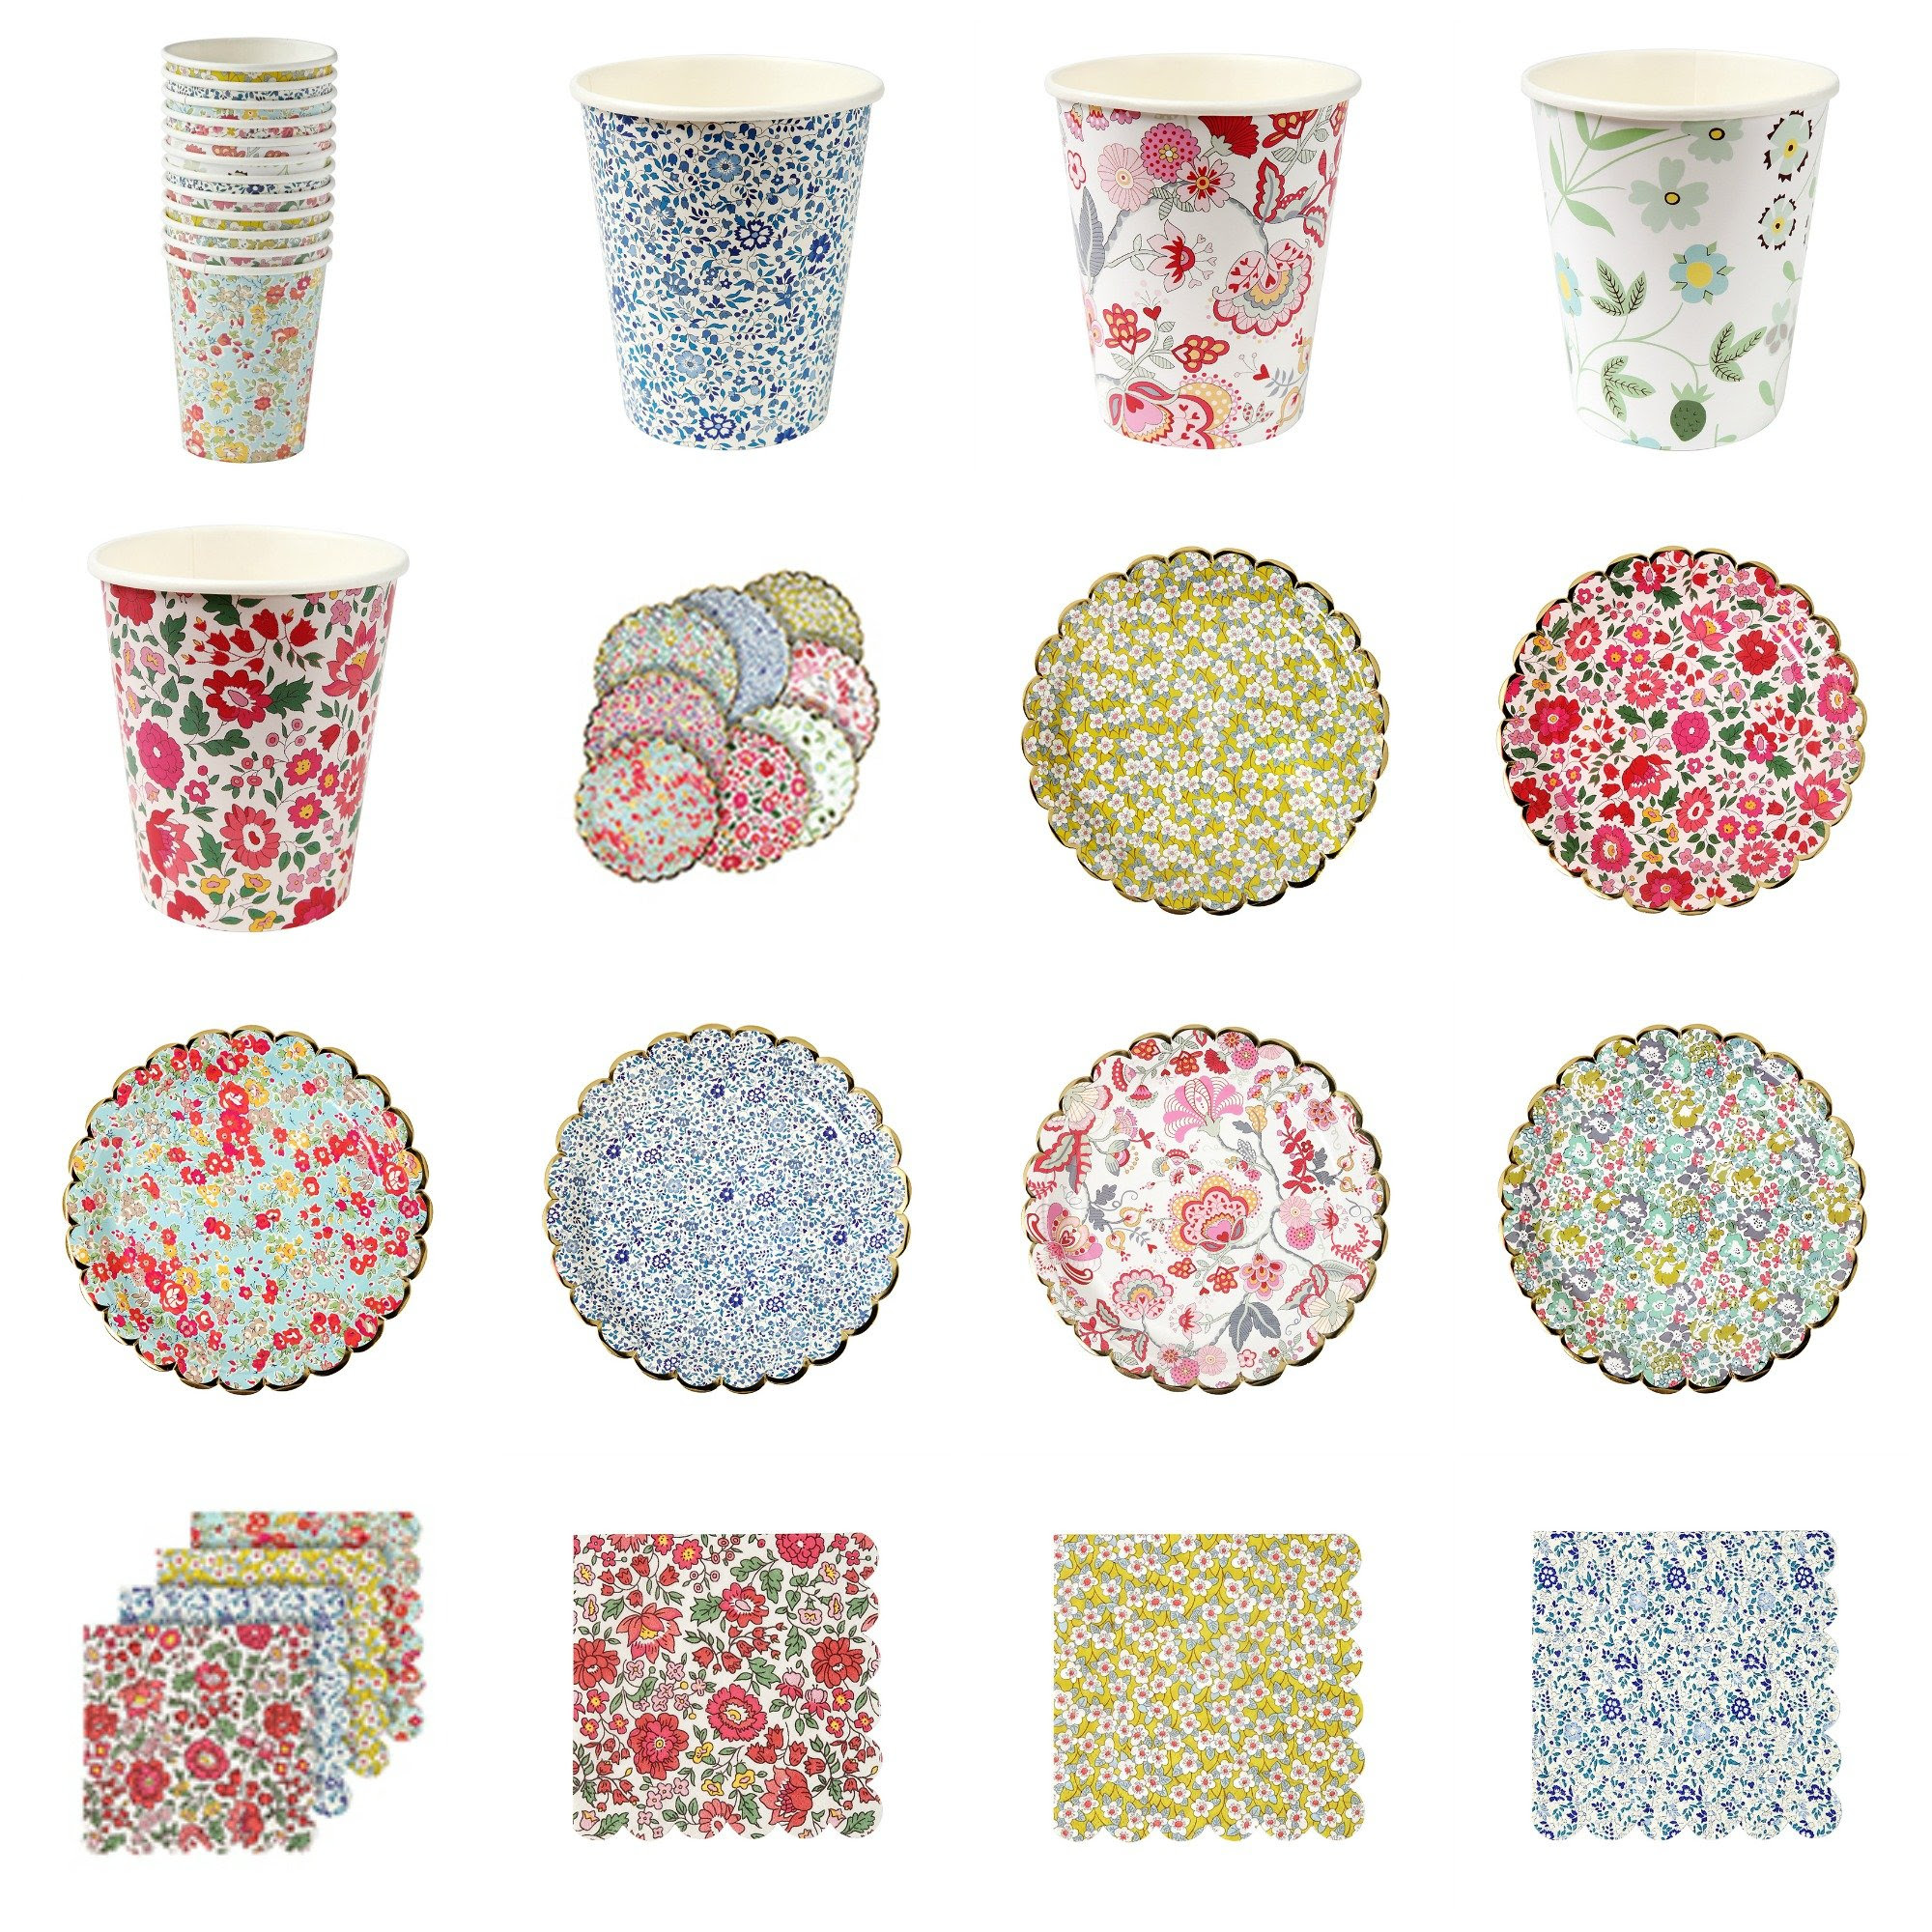 Pop Roc Parties Blog | Meri Meri Liberty Party Supplies